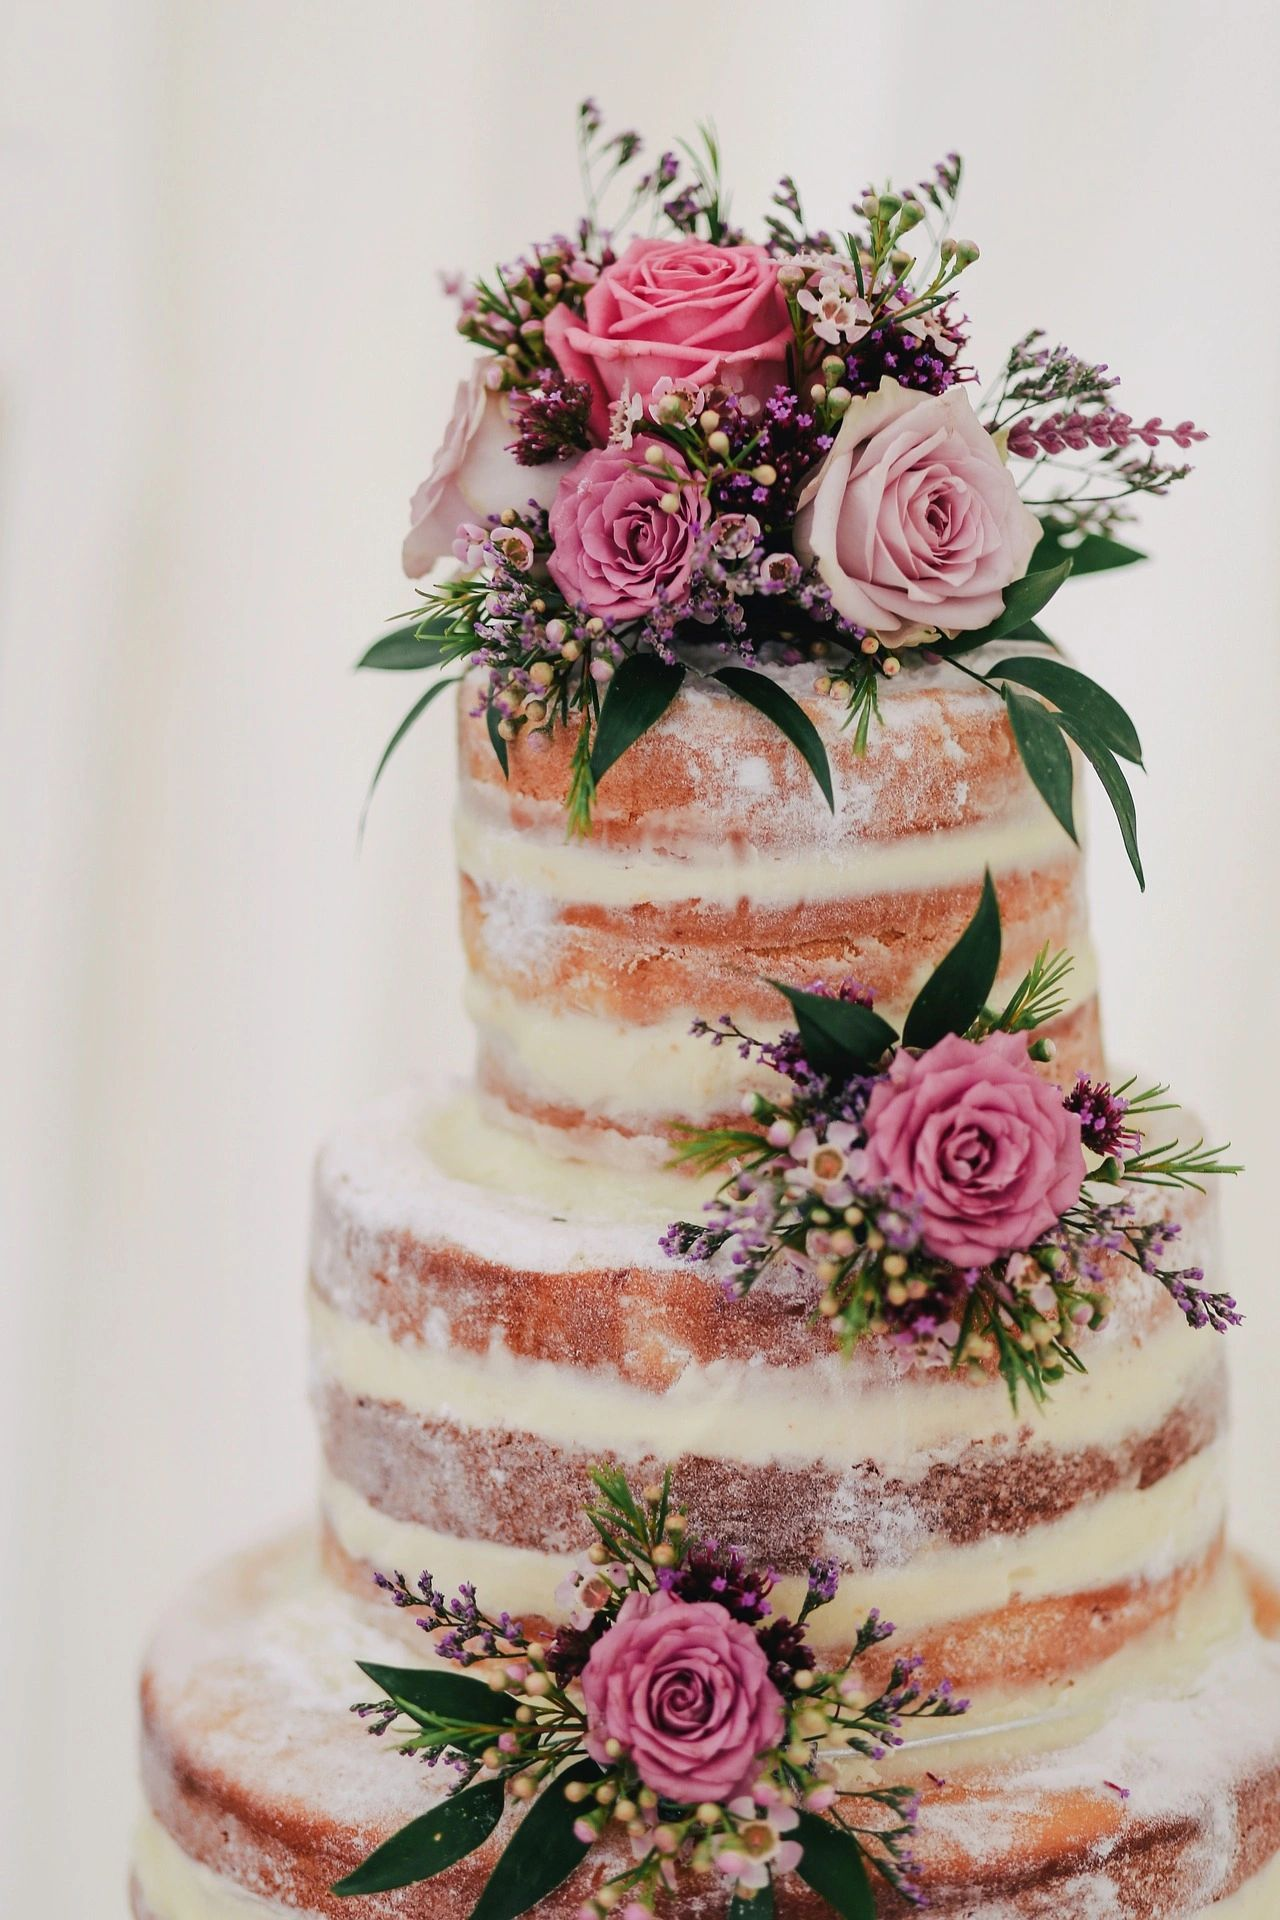 Why I love naked cakes!